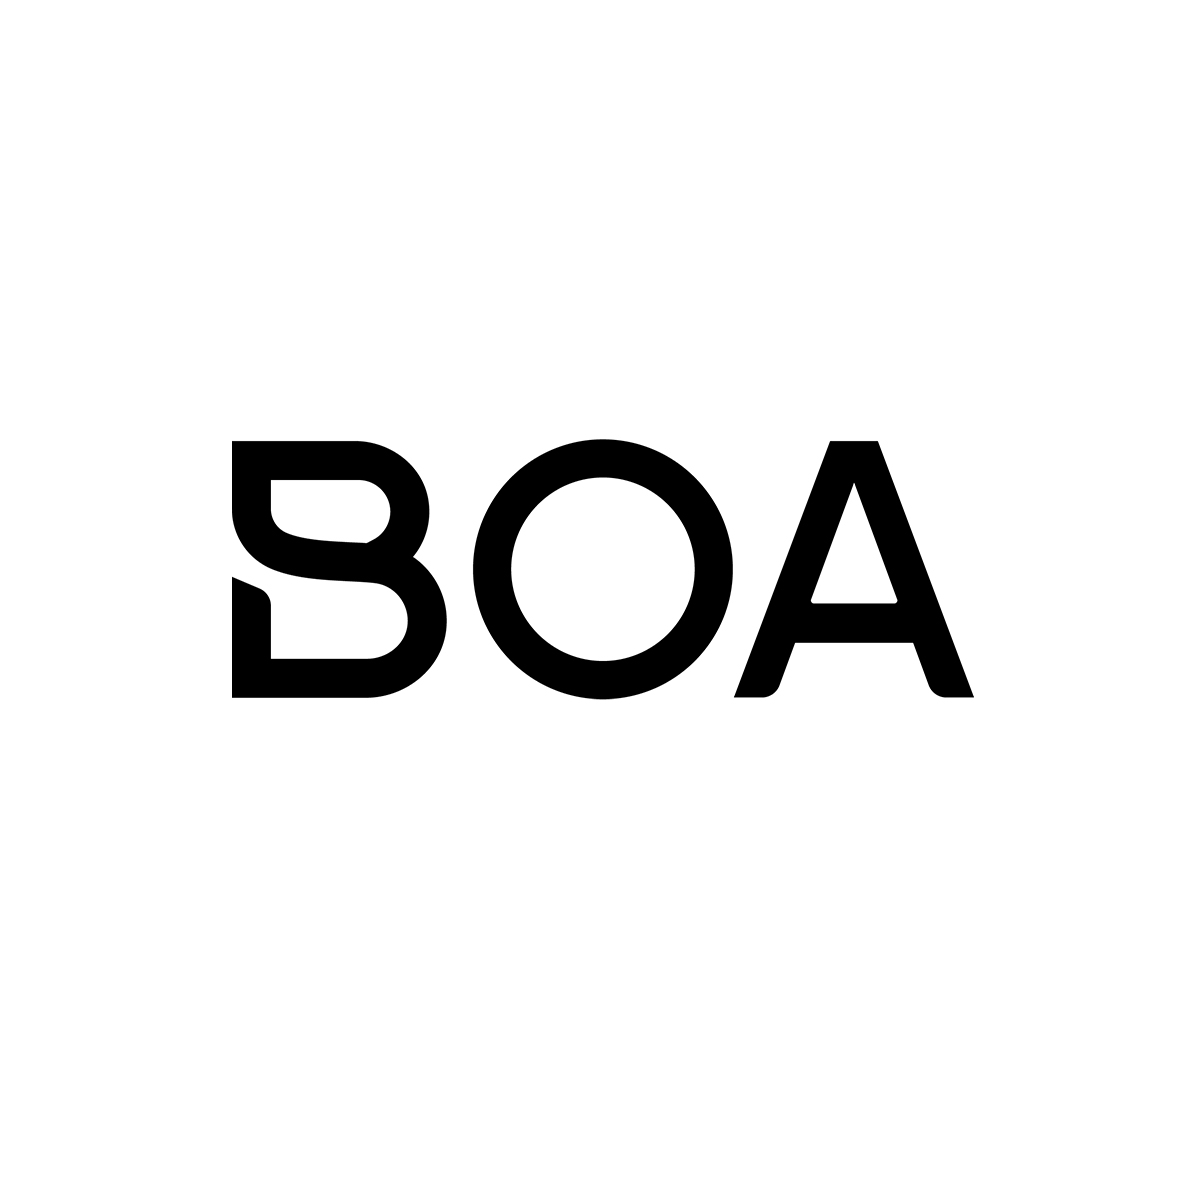 BOA_resized-for-web.jpg